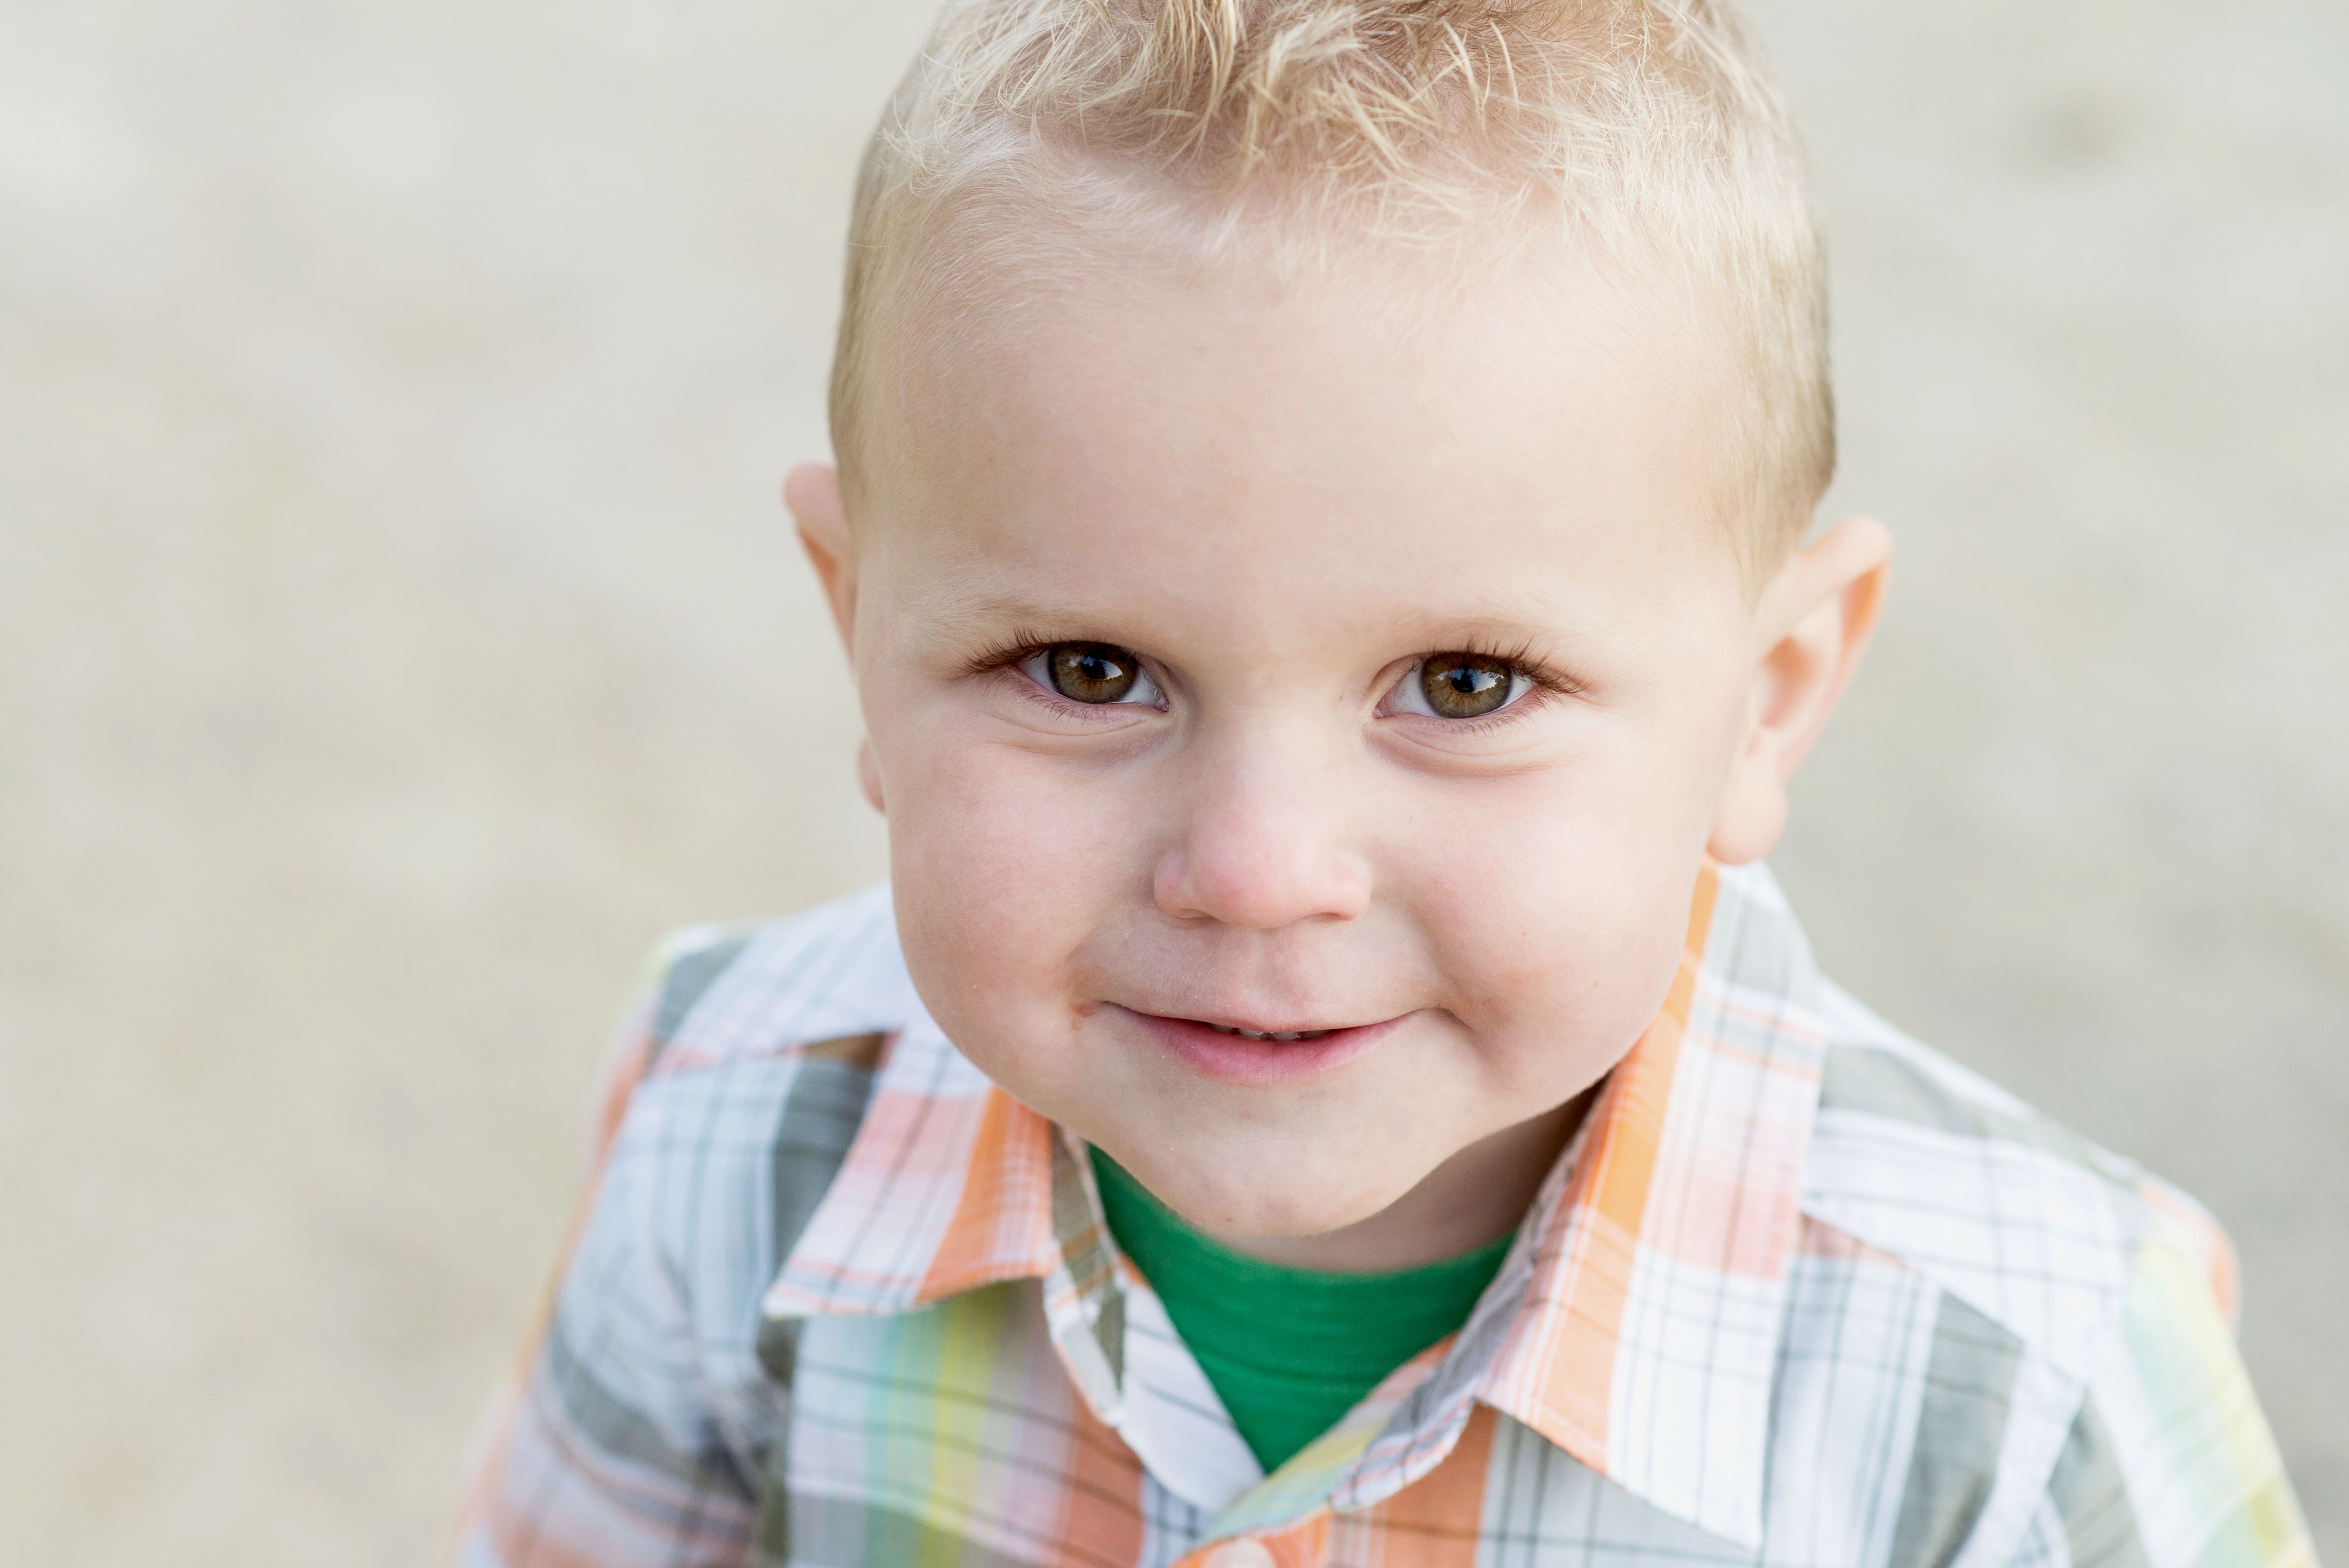 A cute little boy in a plaid shirt smiles up at the camera